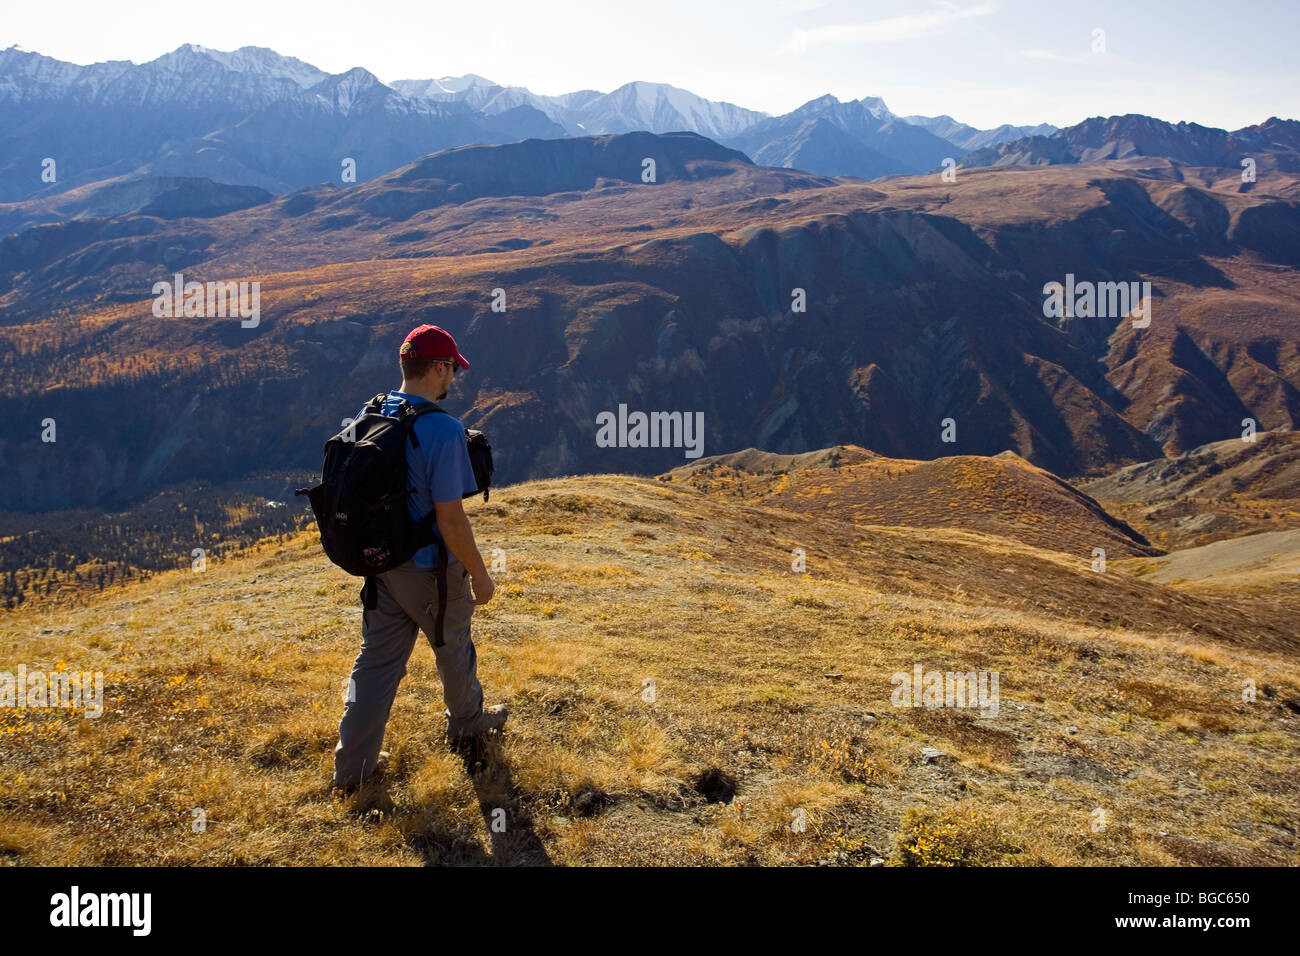 Hiker, man hiking, view from Sheep Mountain to Bullion Plateau, St. Elias Mountains, Kluane National Park and Reserve, - Stock Image